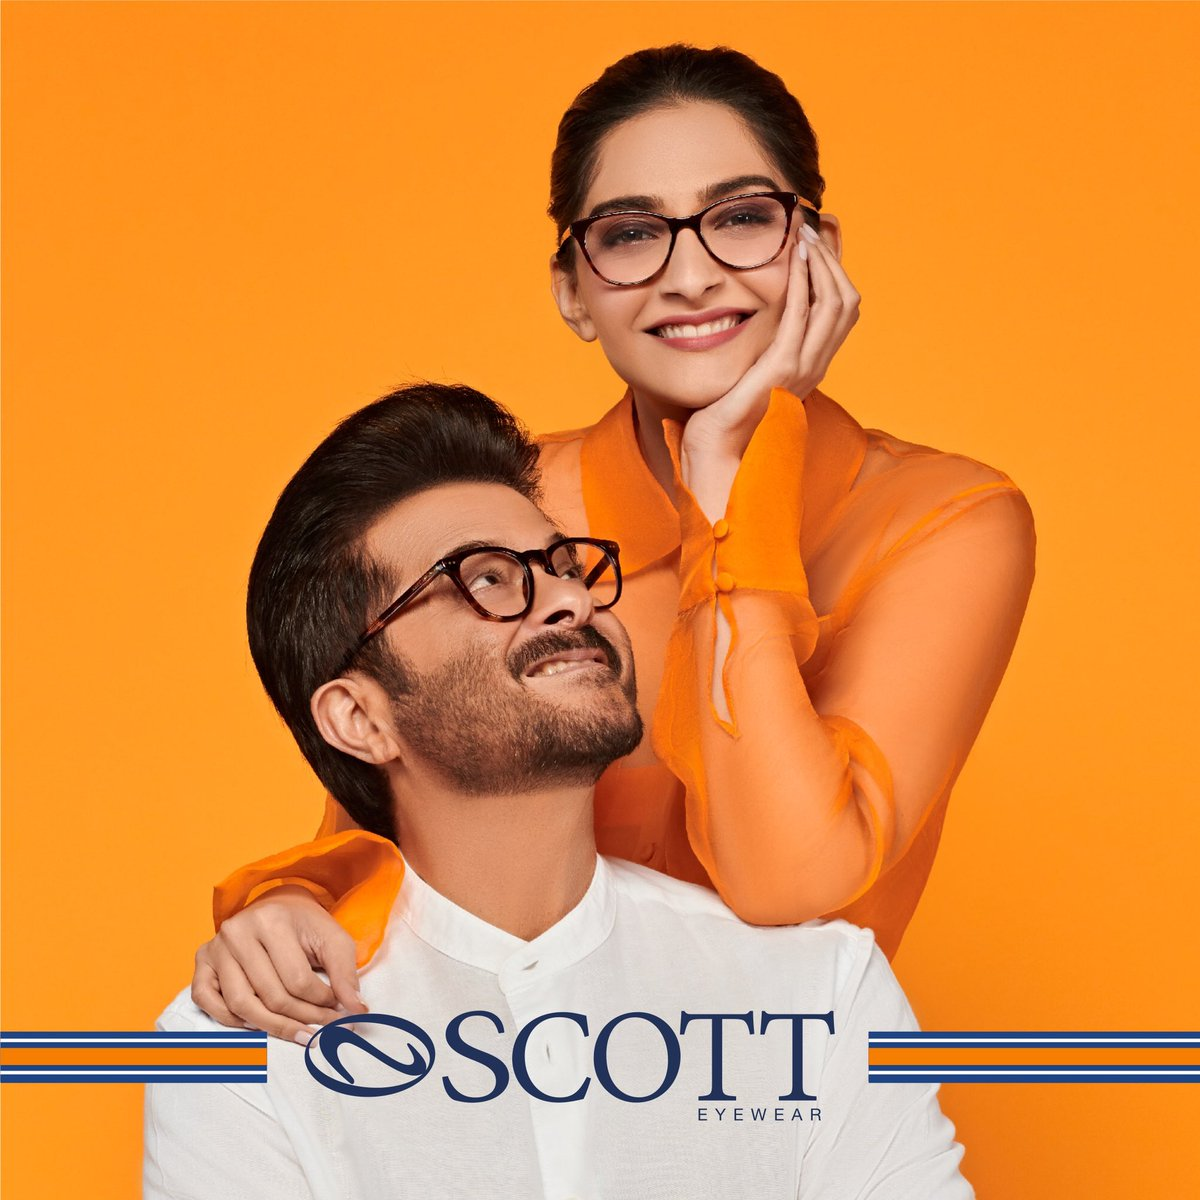 Excited to be back with my #SignatureLine with @ScottEyewear !! Yet another season full of Trends and Styles, with the latest collection of @scotteyewear. Stay tuned to be #SpottedwithScott @sonamakapoor  #scotteyewearxaksk #scotteyewearsignaturecollection #scottryewear